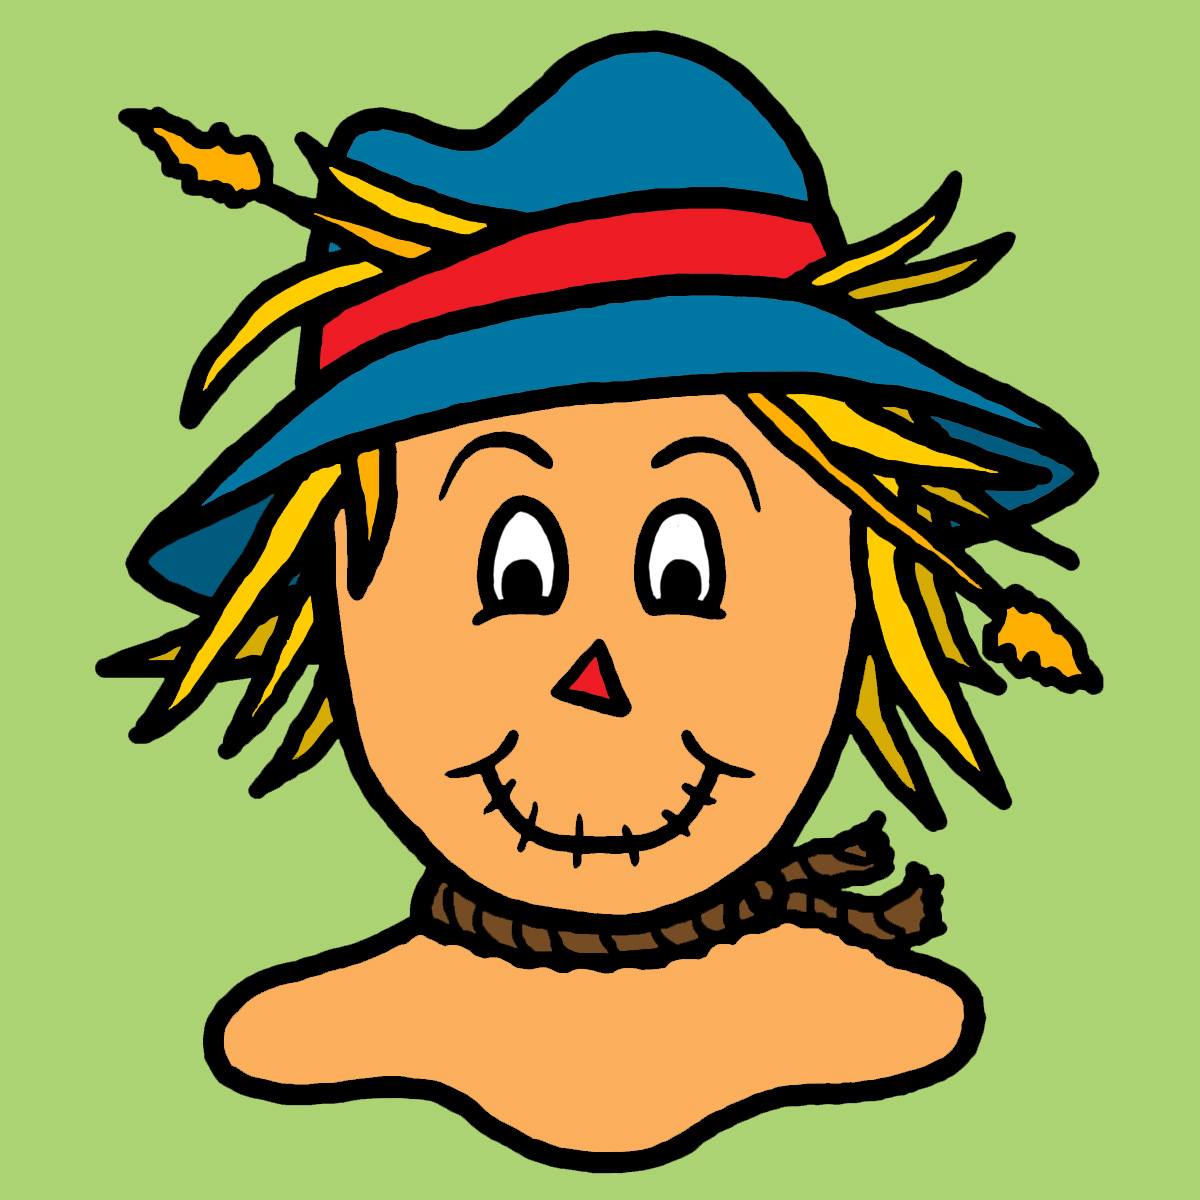 scarecrow-clip-art-scarecrow-clip-art-5 jpgScarecrow Face Clipart